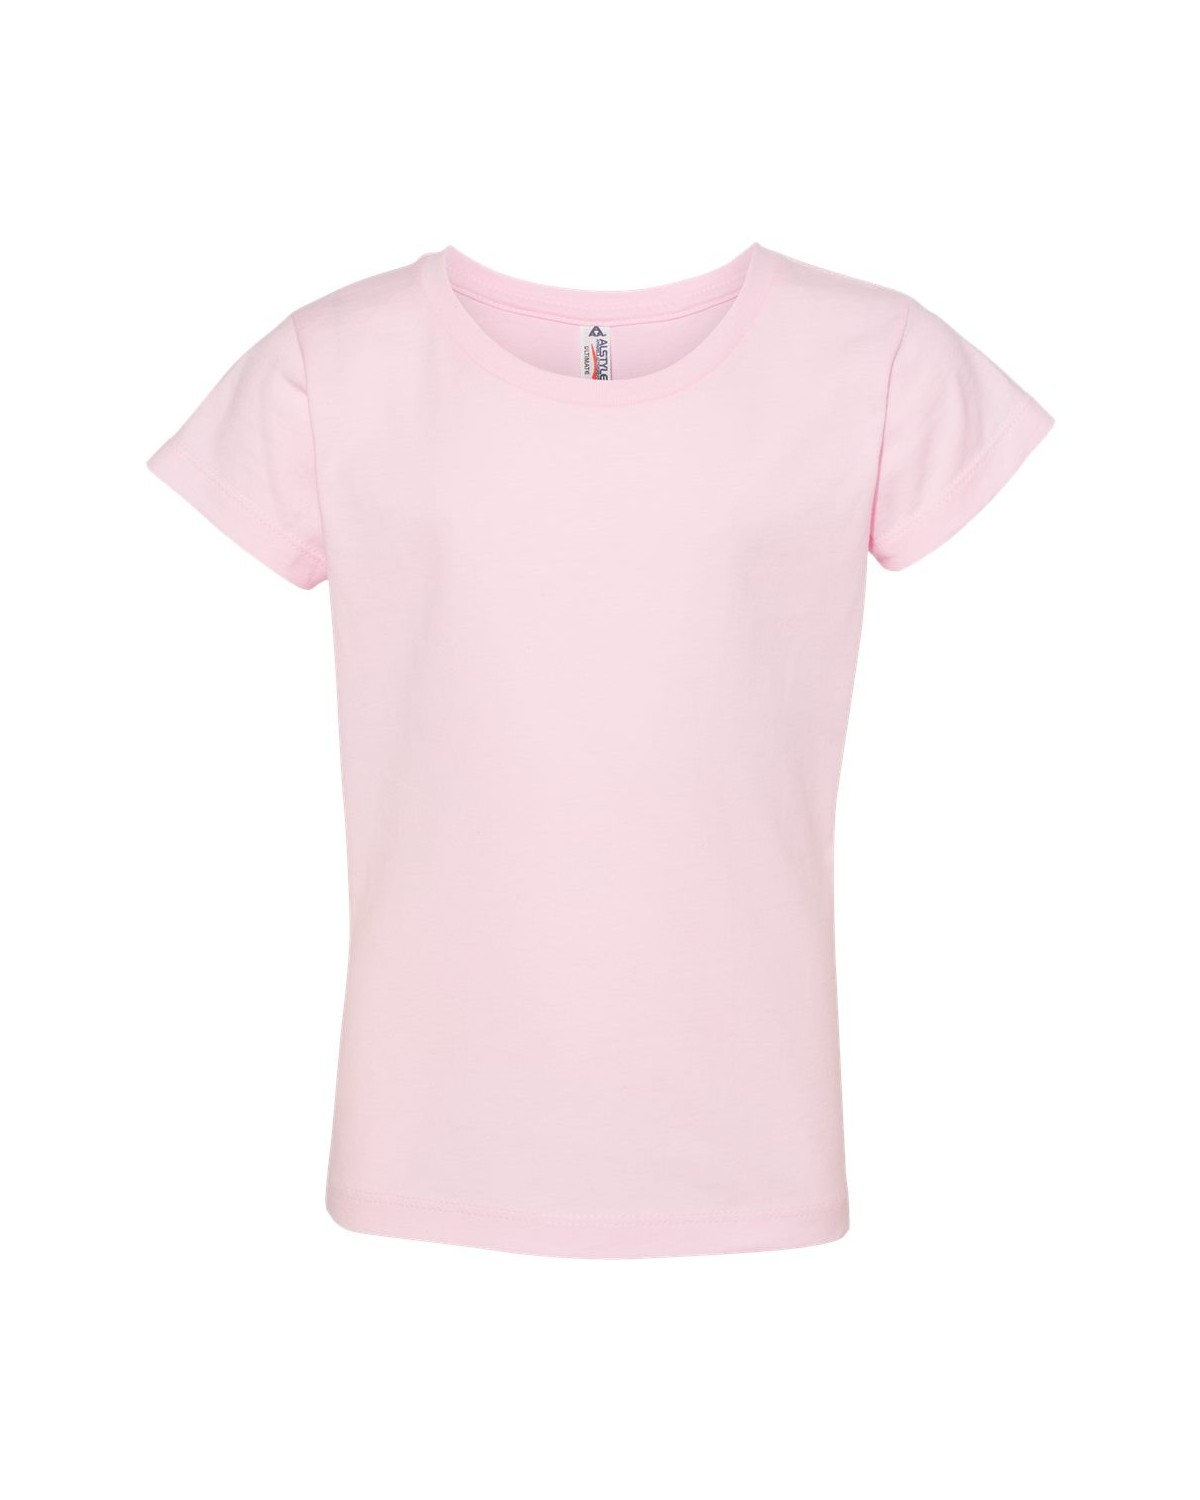 3362 Alstyle PINK